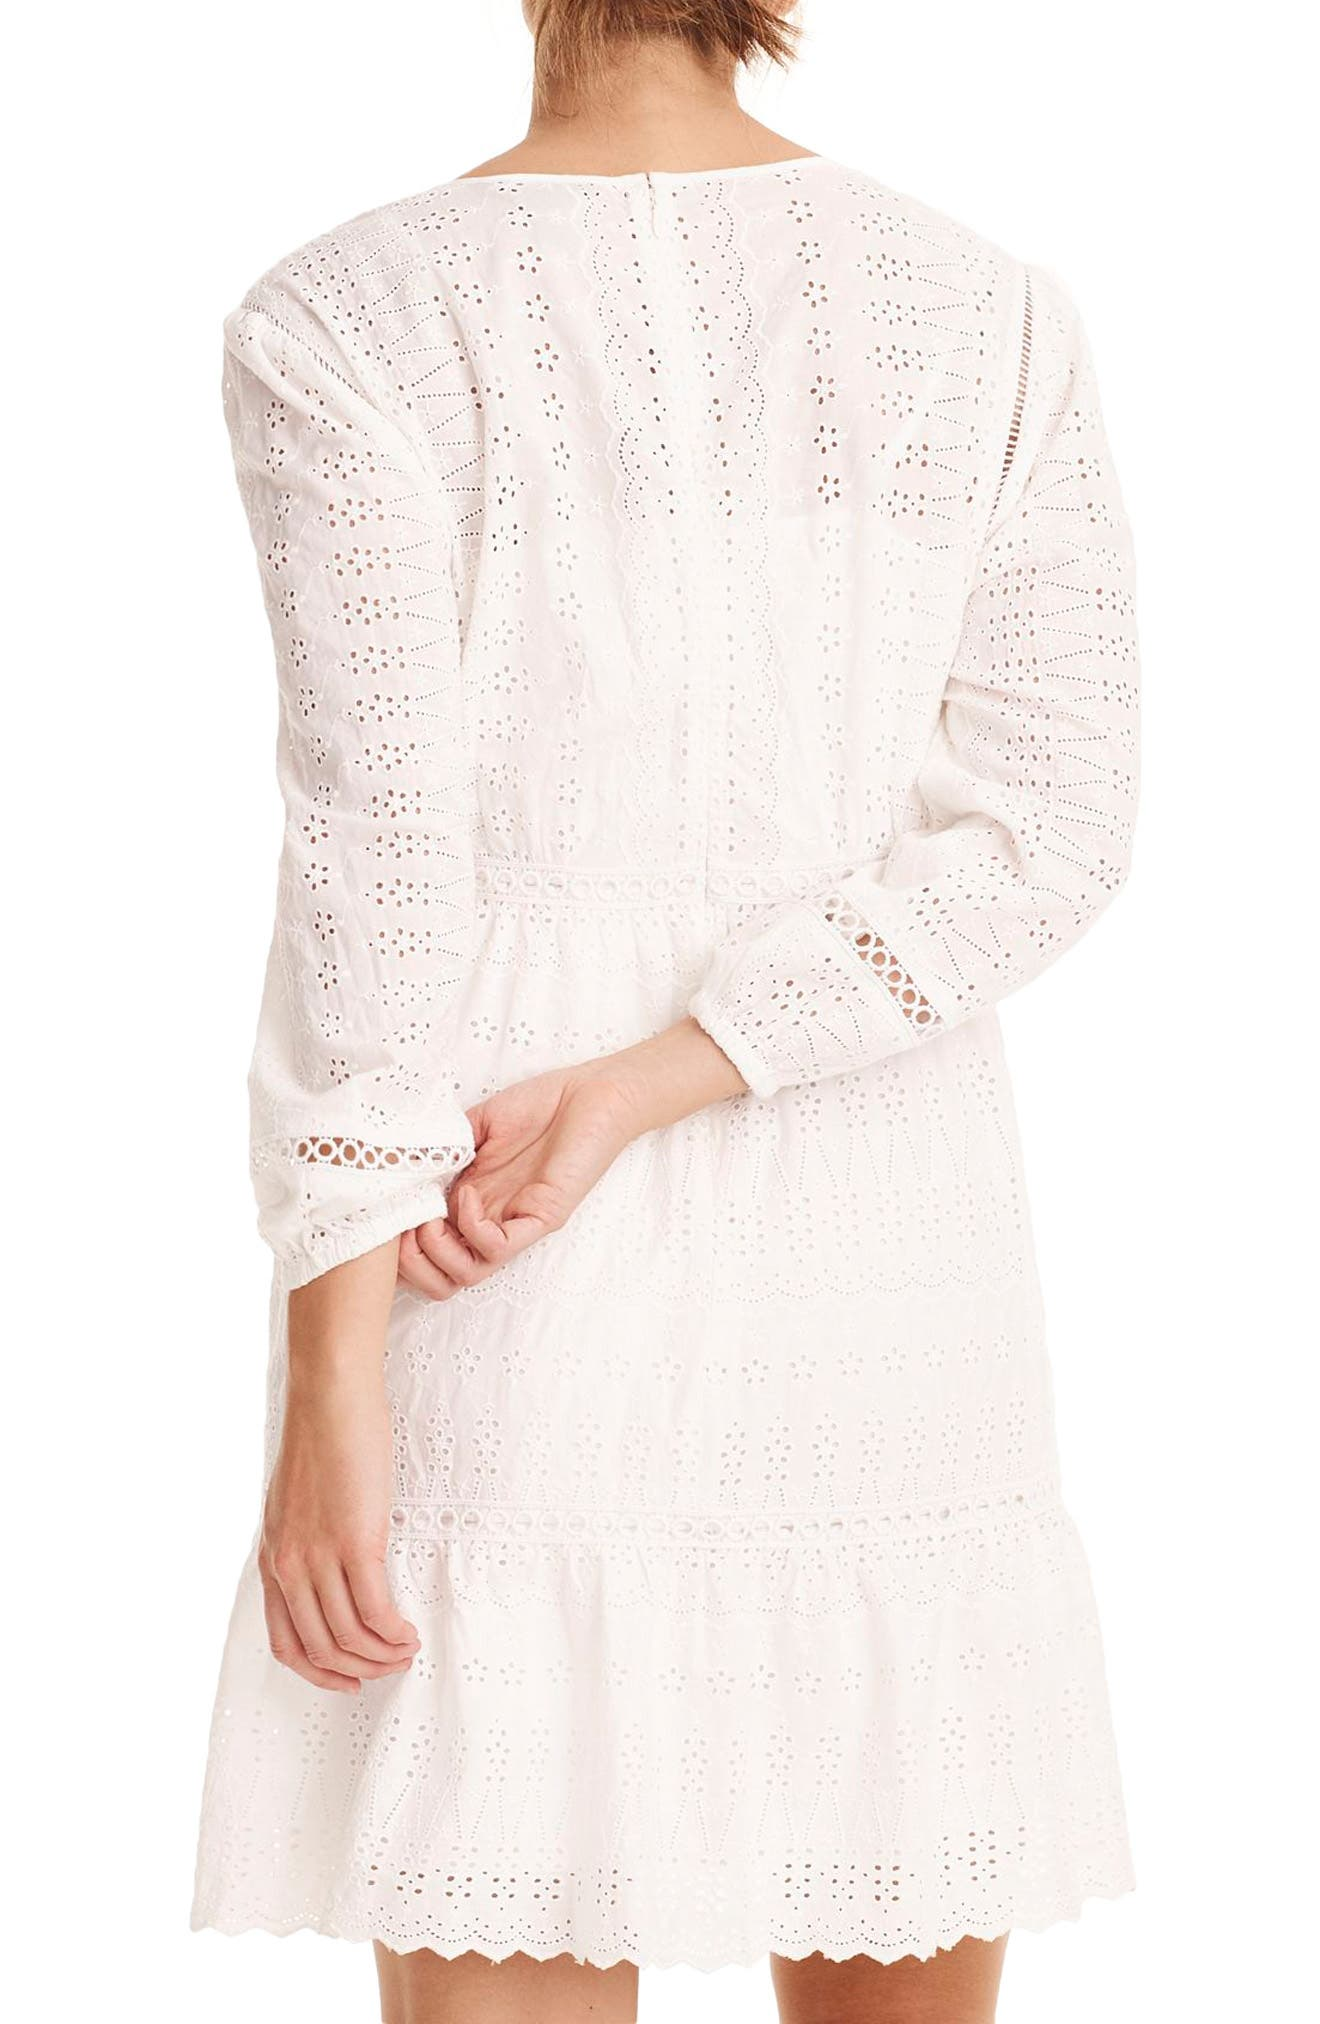 Long Sleeve Embroidered Dress,                             Alternate thumbnail 2, color,                             White